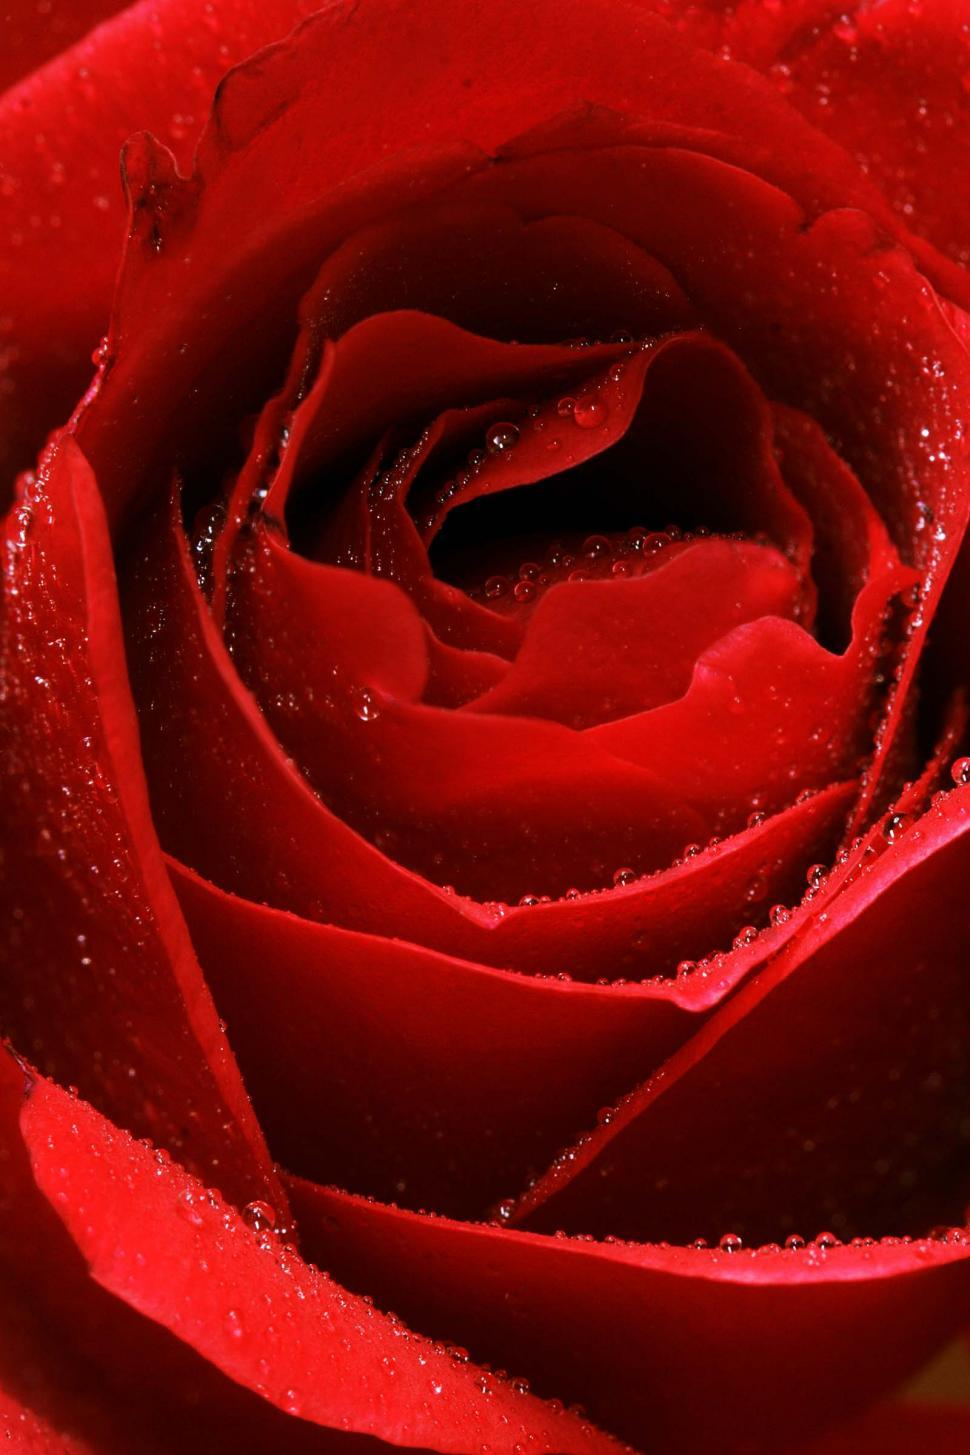 Download Free Stock HD Photo of Detail of red rose Online